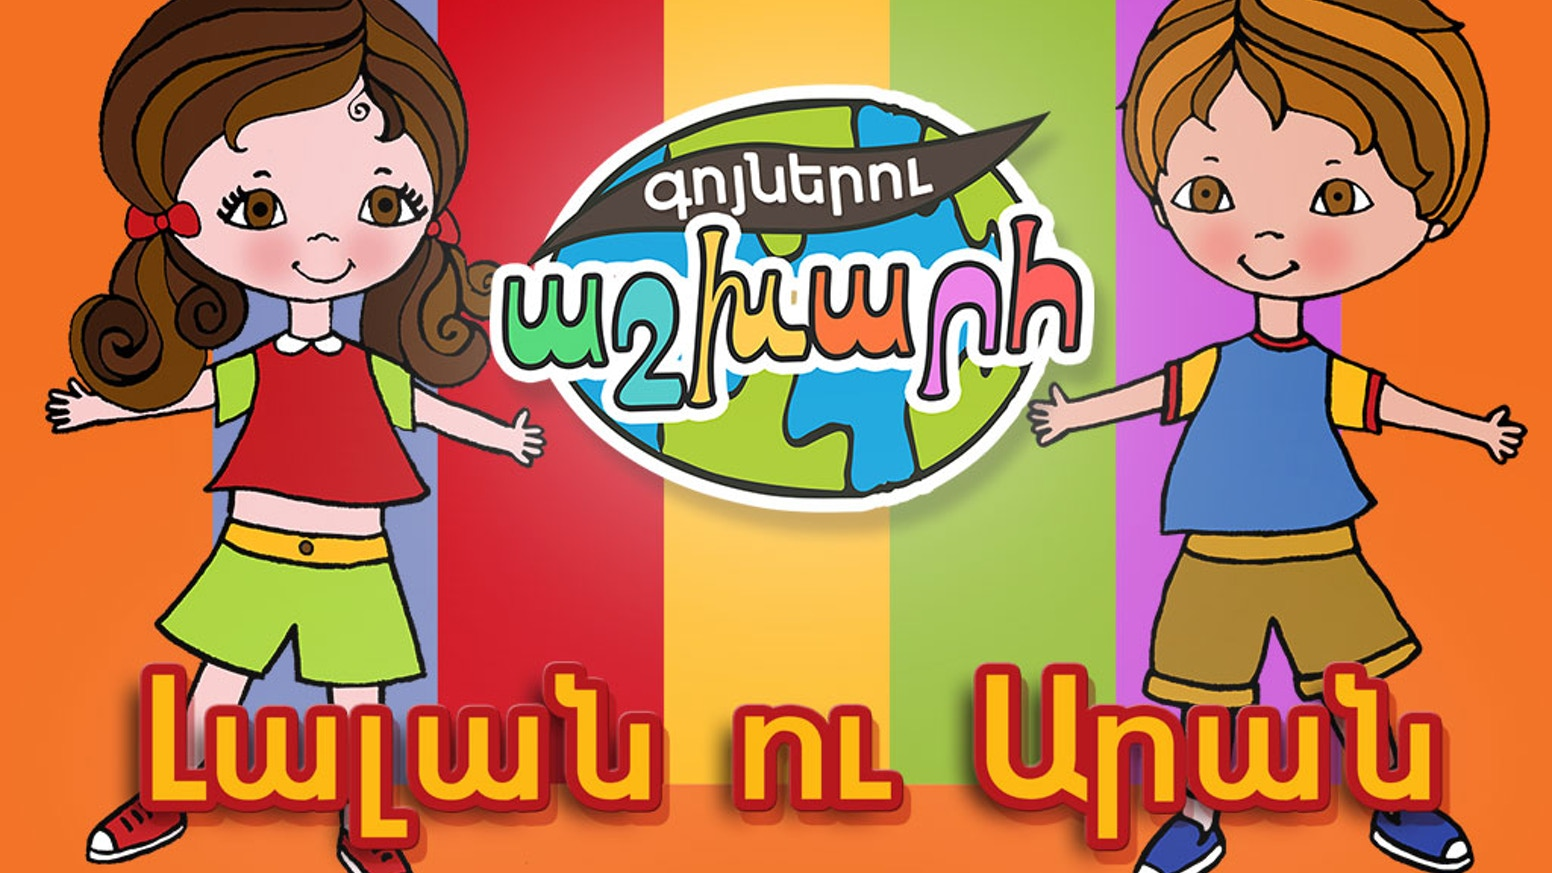 Educational games for the iOS & Android platforms, aimed at teaching Armenian through colors to children aged 3+.